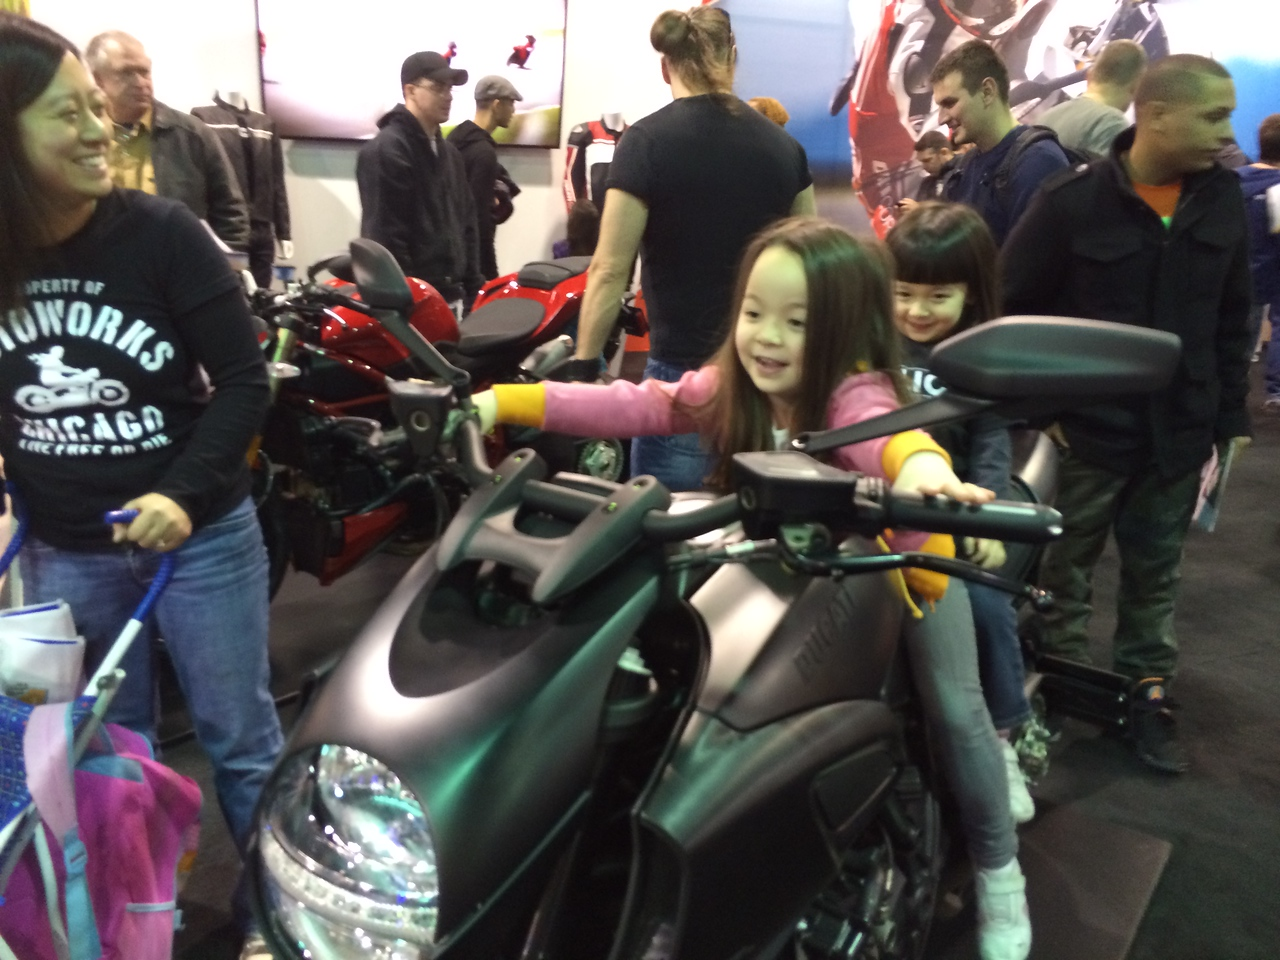 Keira giving Chloe a ride on the Diavel